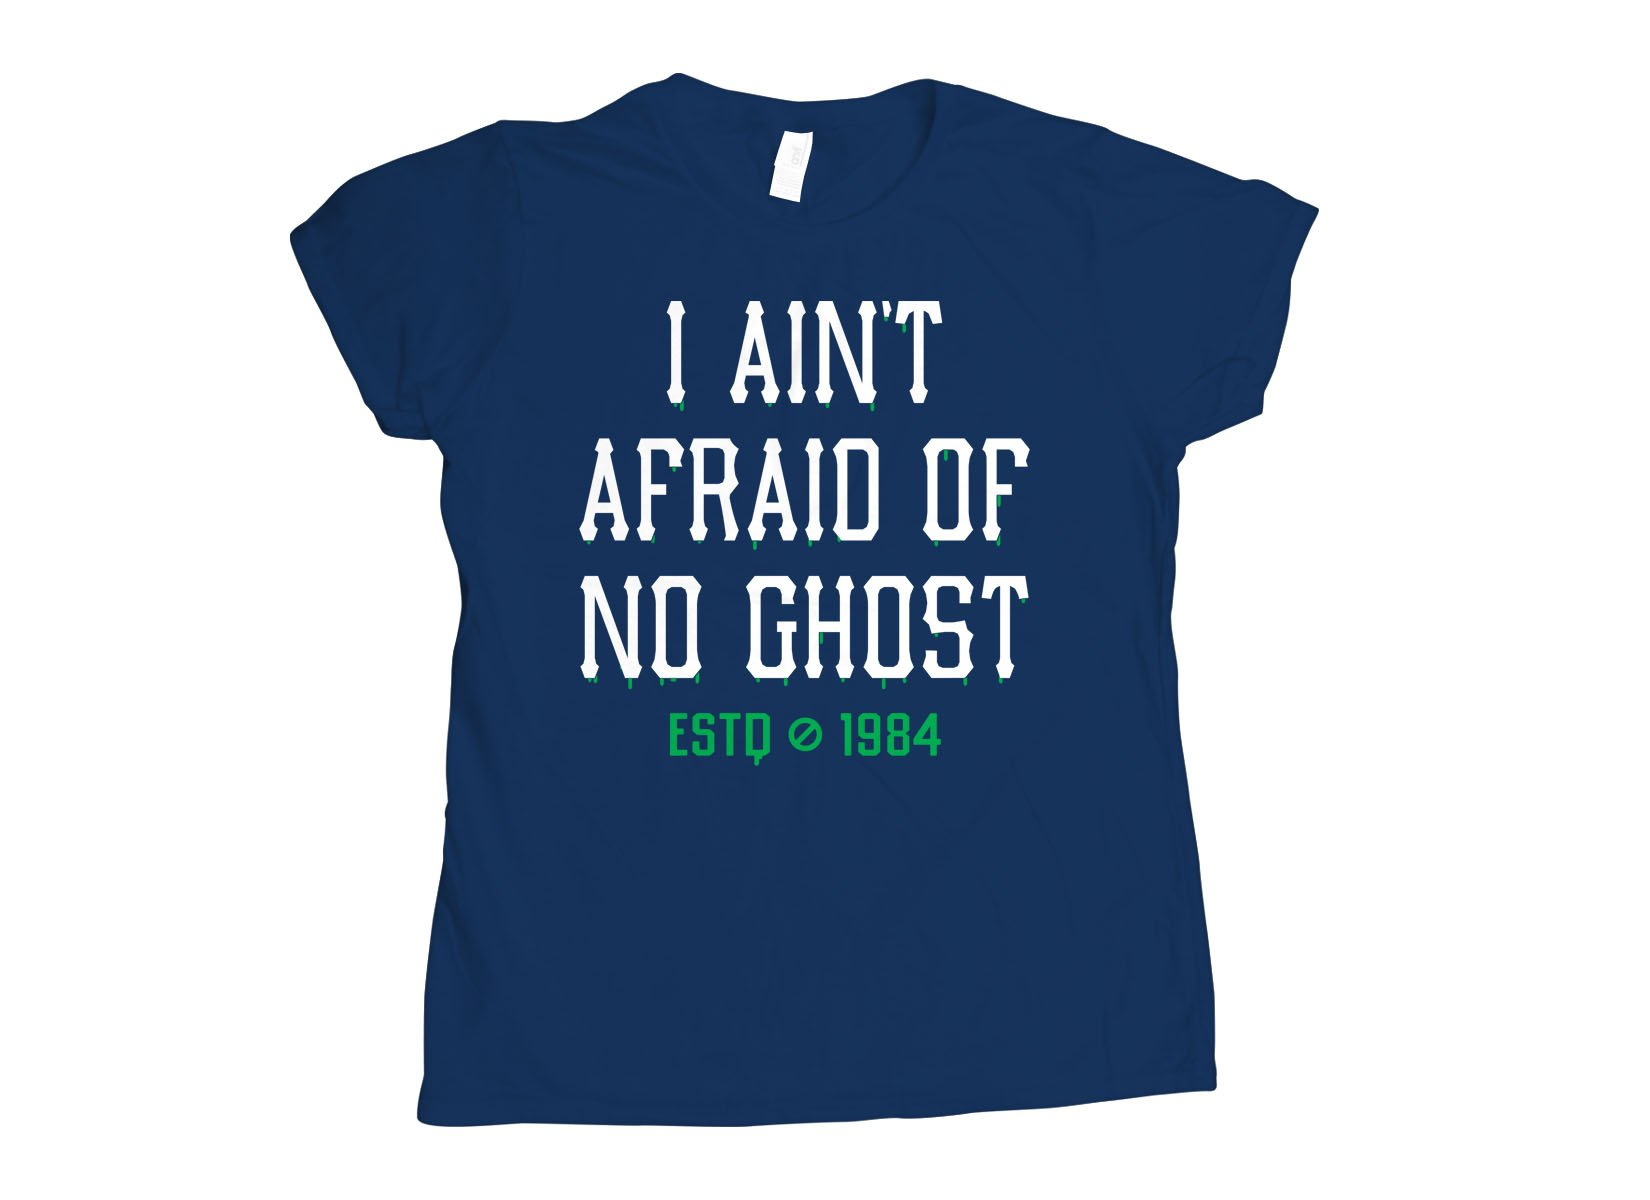 I Ain't Afraid Of No Ghost on Womens T-Shirt